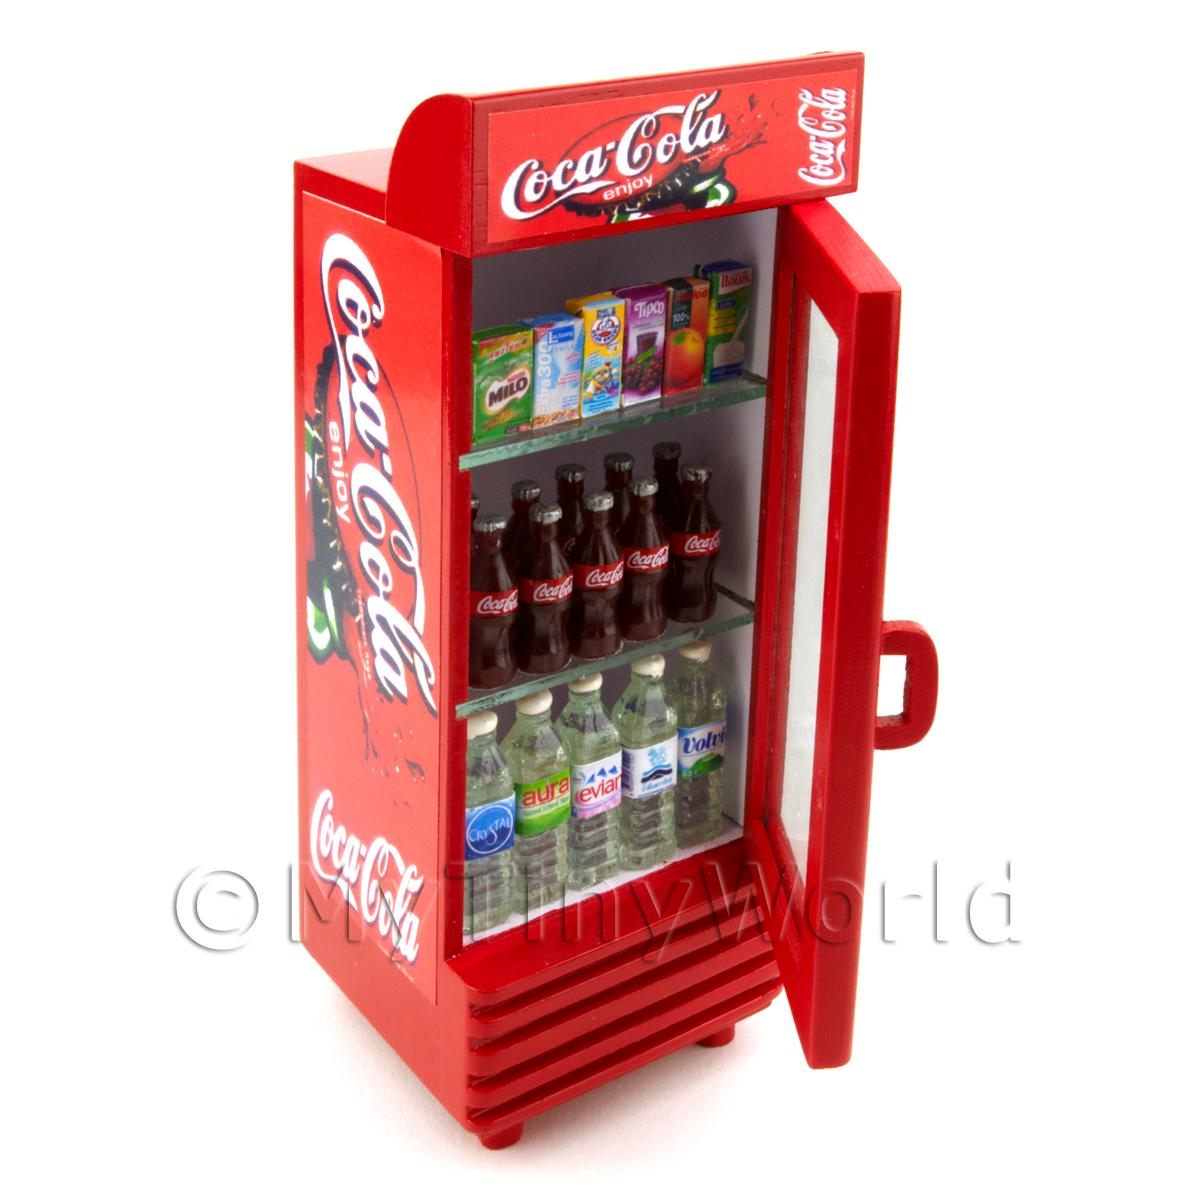 Dolls House Miniature Freestanding Coke Fridge With Contents